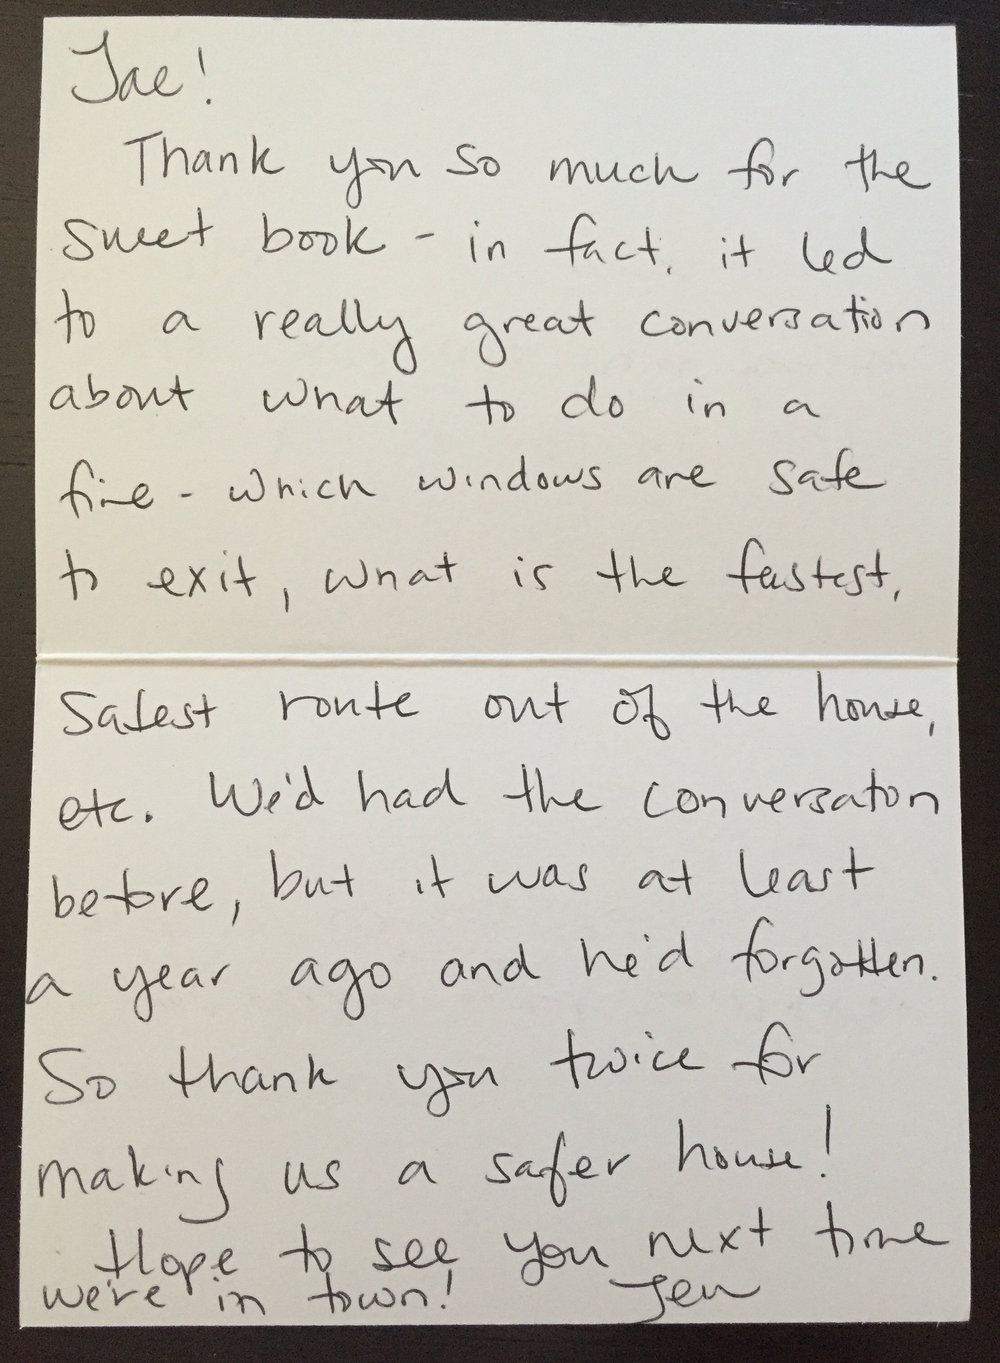 A thank you note from a grateful parent.